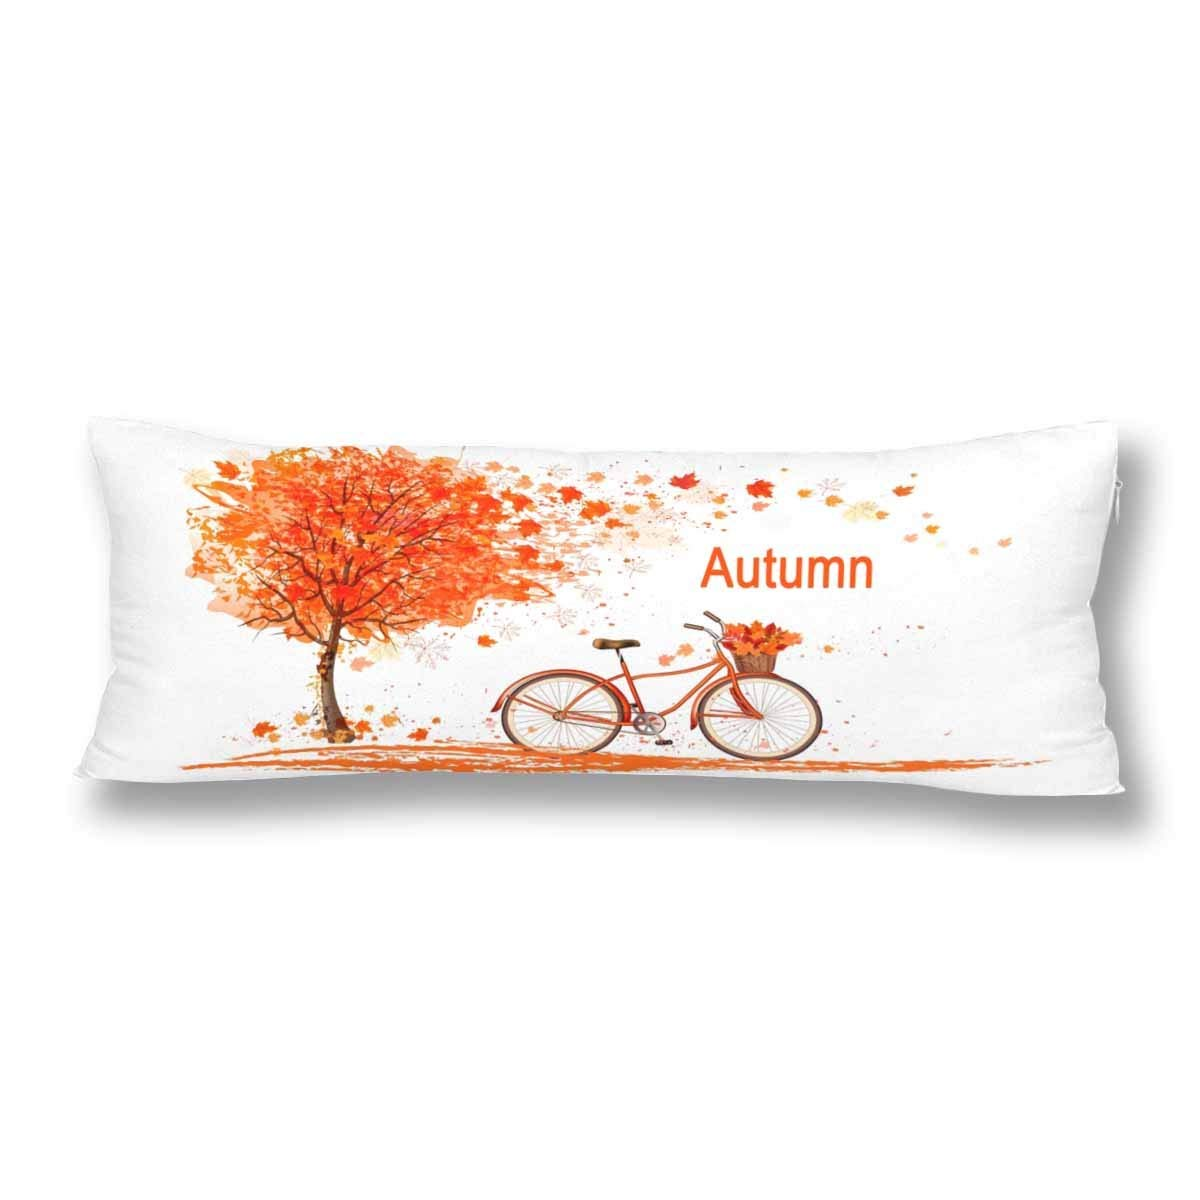 ABPHOTO Autumn Nature Tree and Bicycle Body Pillow Covers Pillowcase 20x60 inch Orange Fall Tree Leaves Bike Body Pillow Case Protector